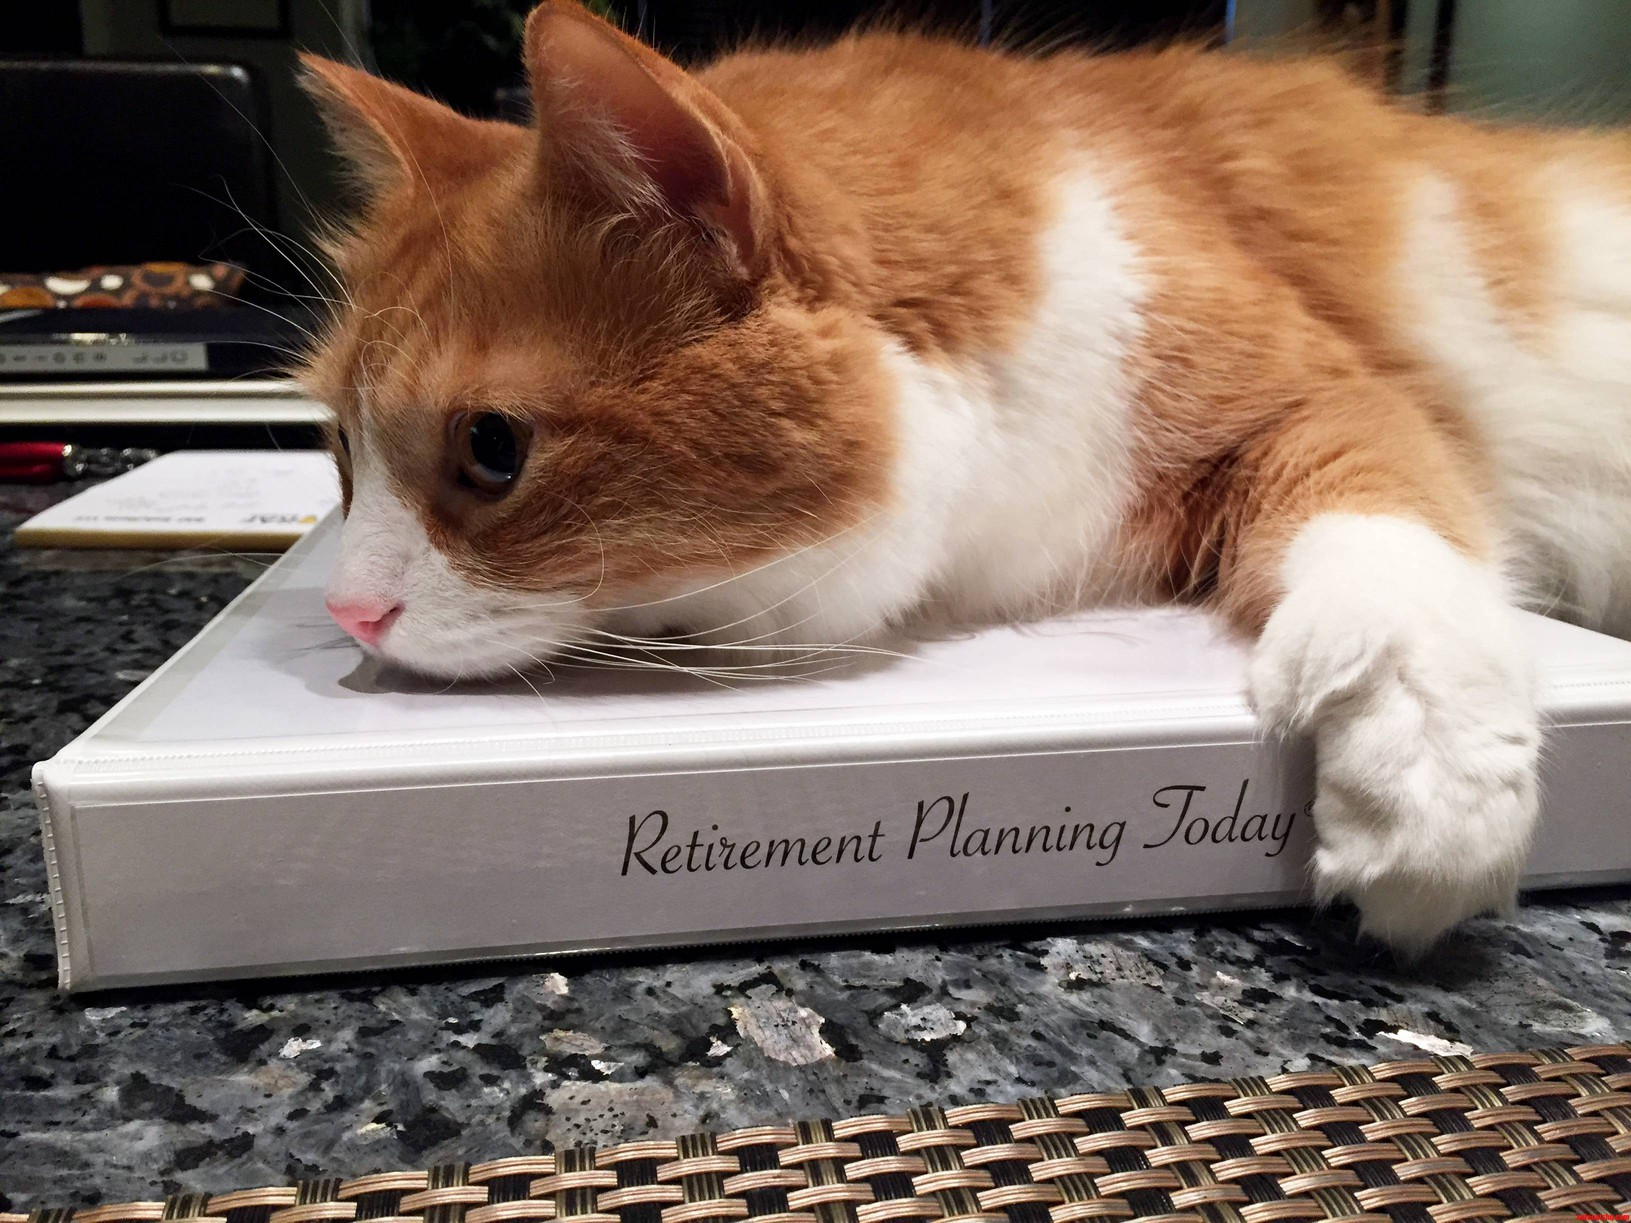 Its never too early to start planning for retirement…especially in cat  years | Cute cats HQ - Pictures of cute cats and kittens Free pictures of  funny cats and photo of cute